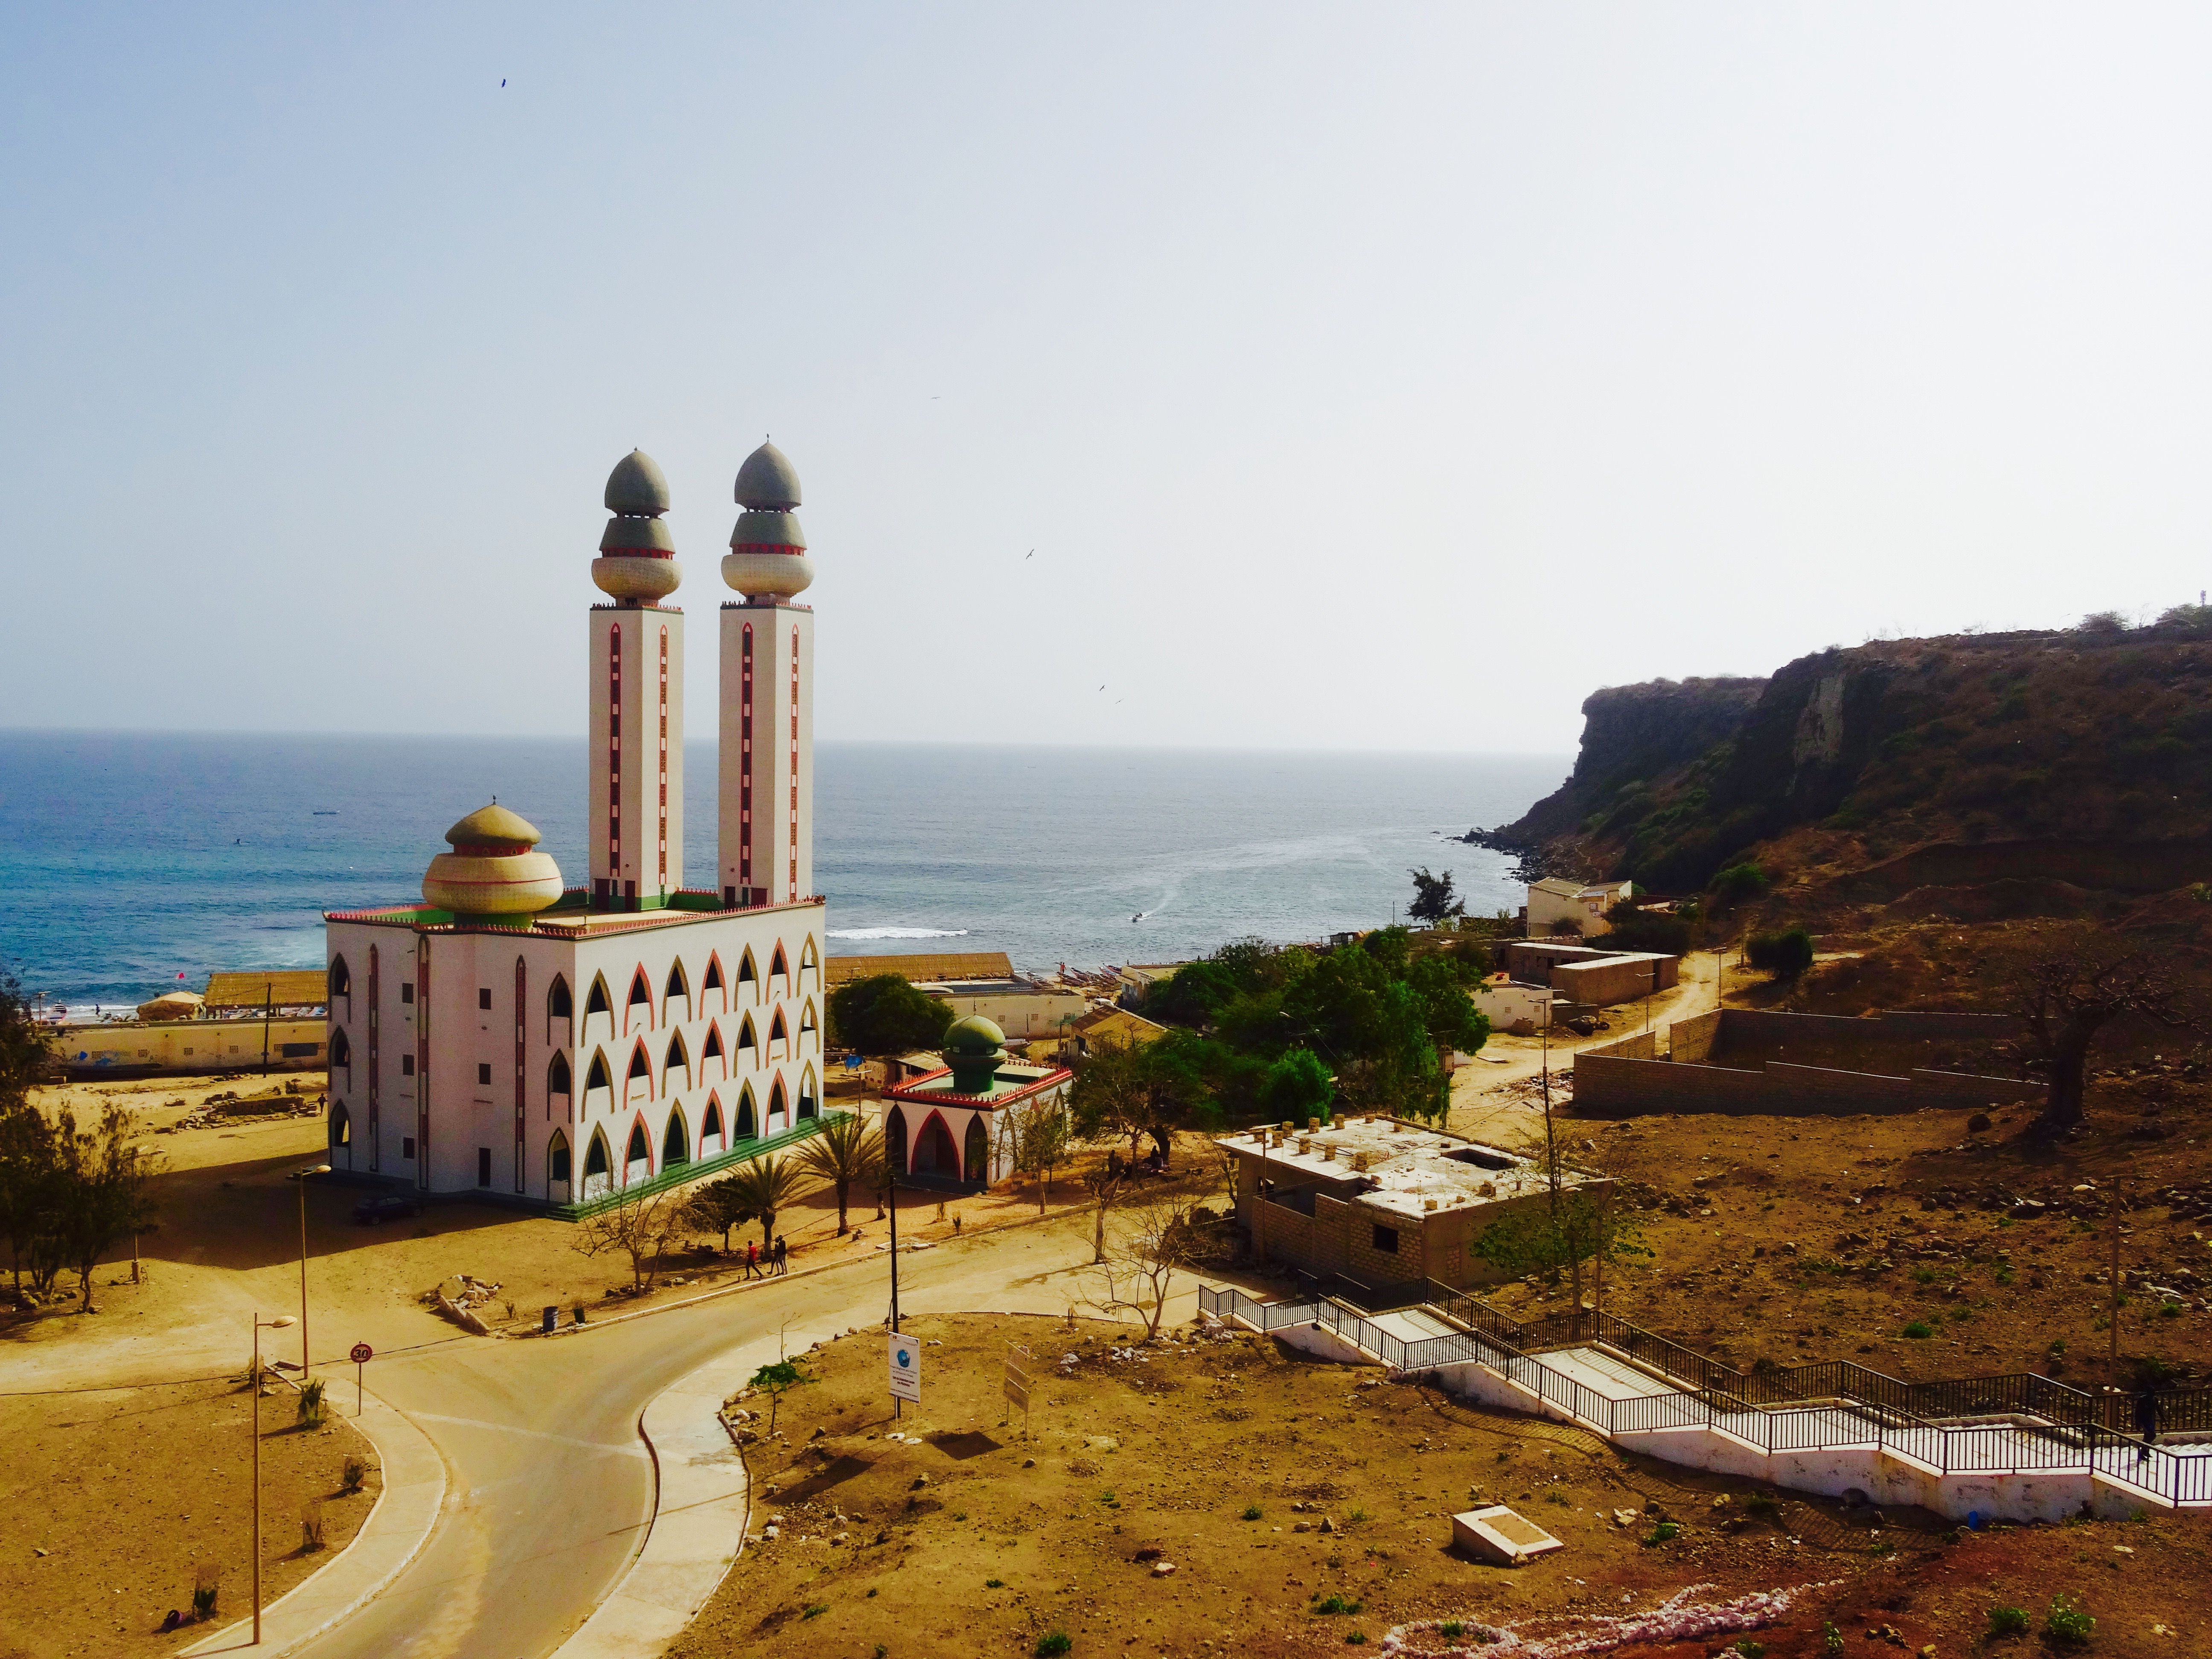 Scenic View with Mosque in Dakar, Senegal